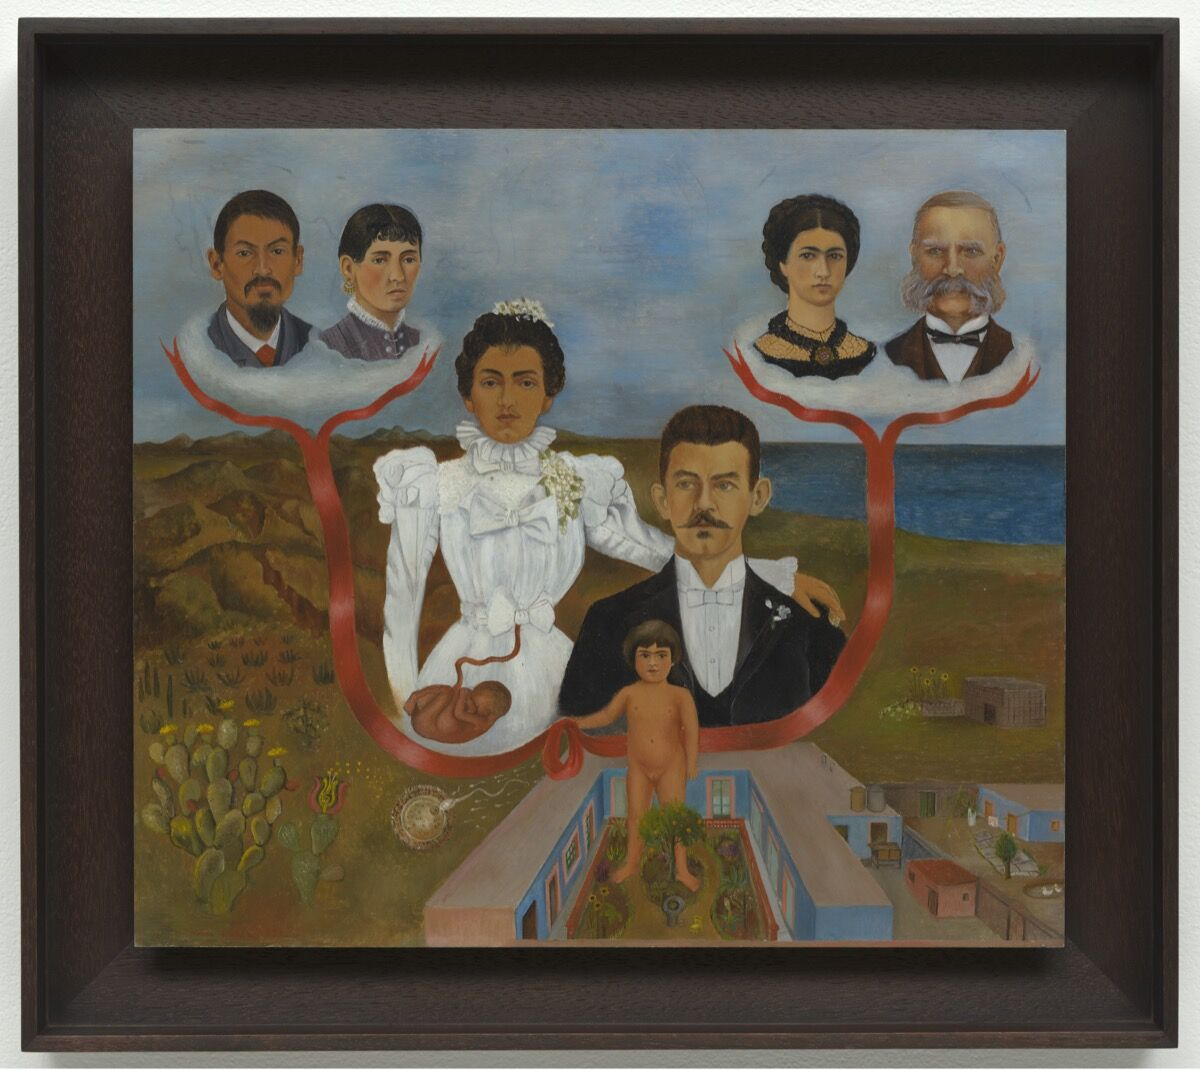 Frida Kahlo, My Grandparents, My Parents, and I (Family Tree), 1936. © ARS, NY. © The Museum of Modern Art/Licensed by SCALA / Art Resource, NY. Courtesy of The Museum of Modern Art.